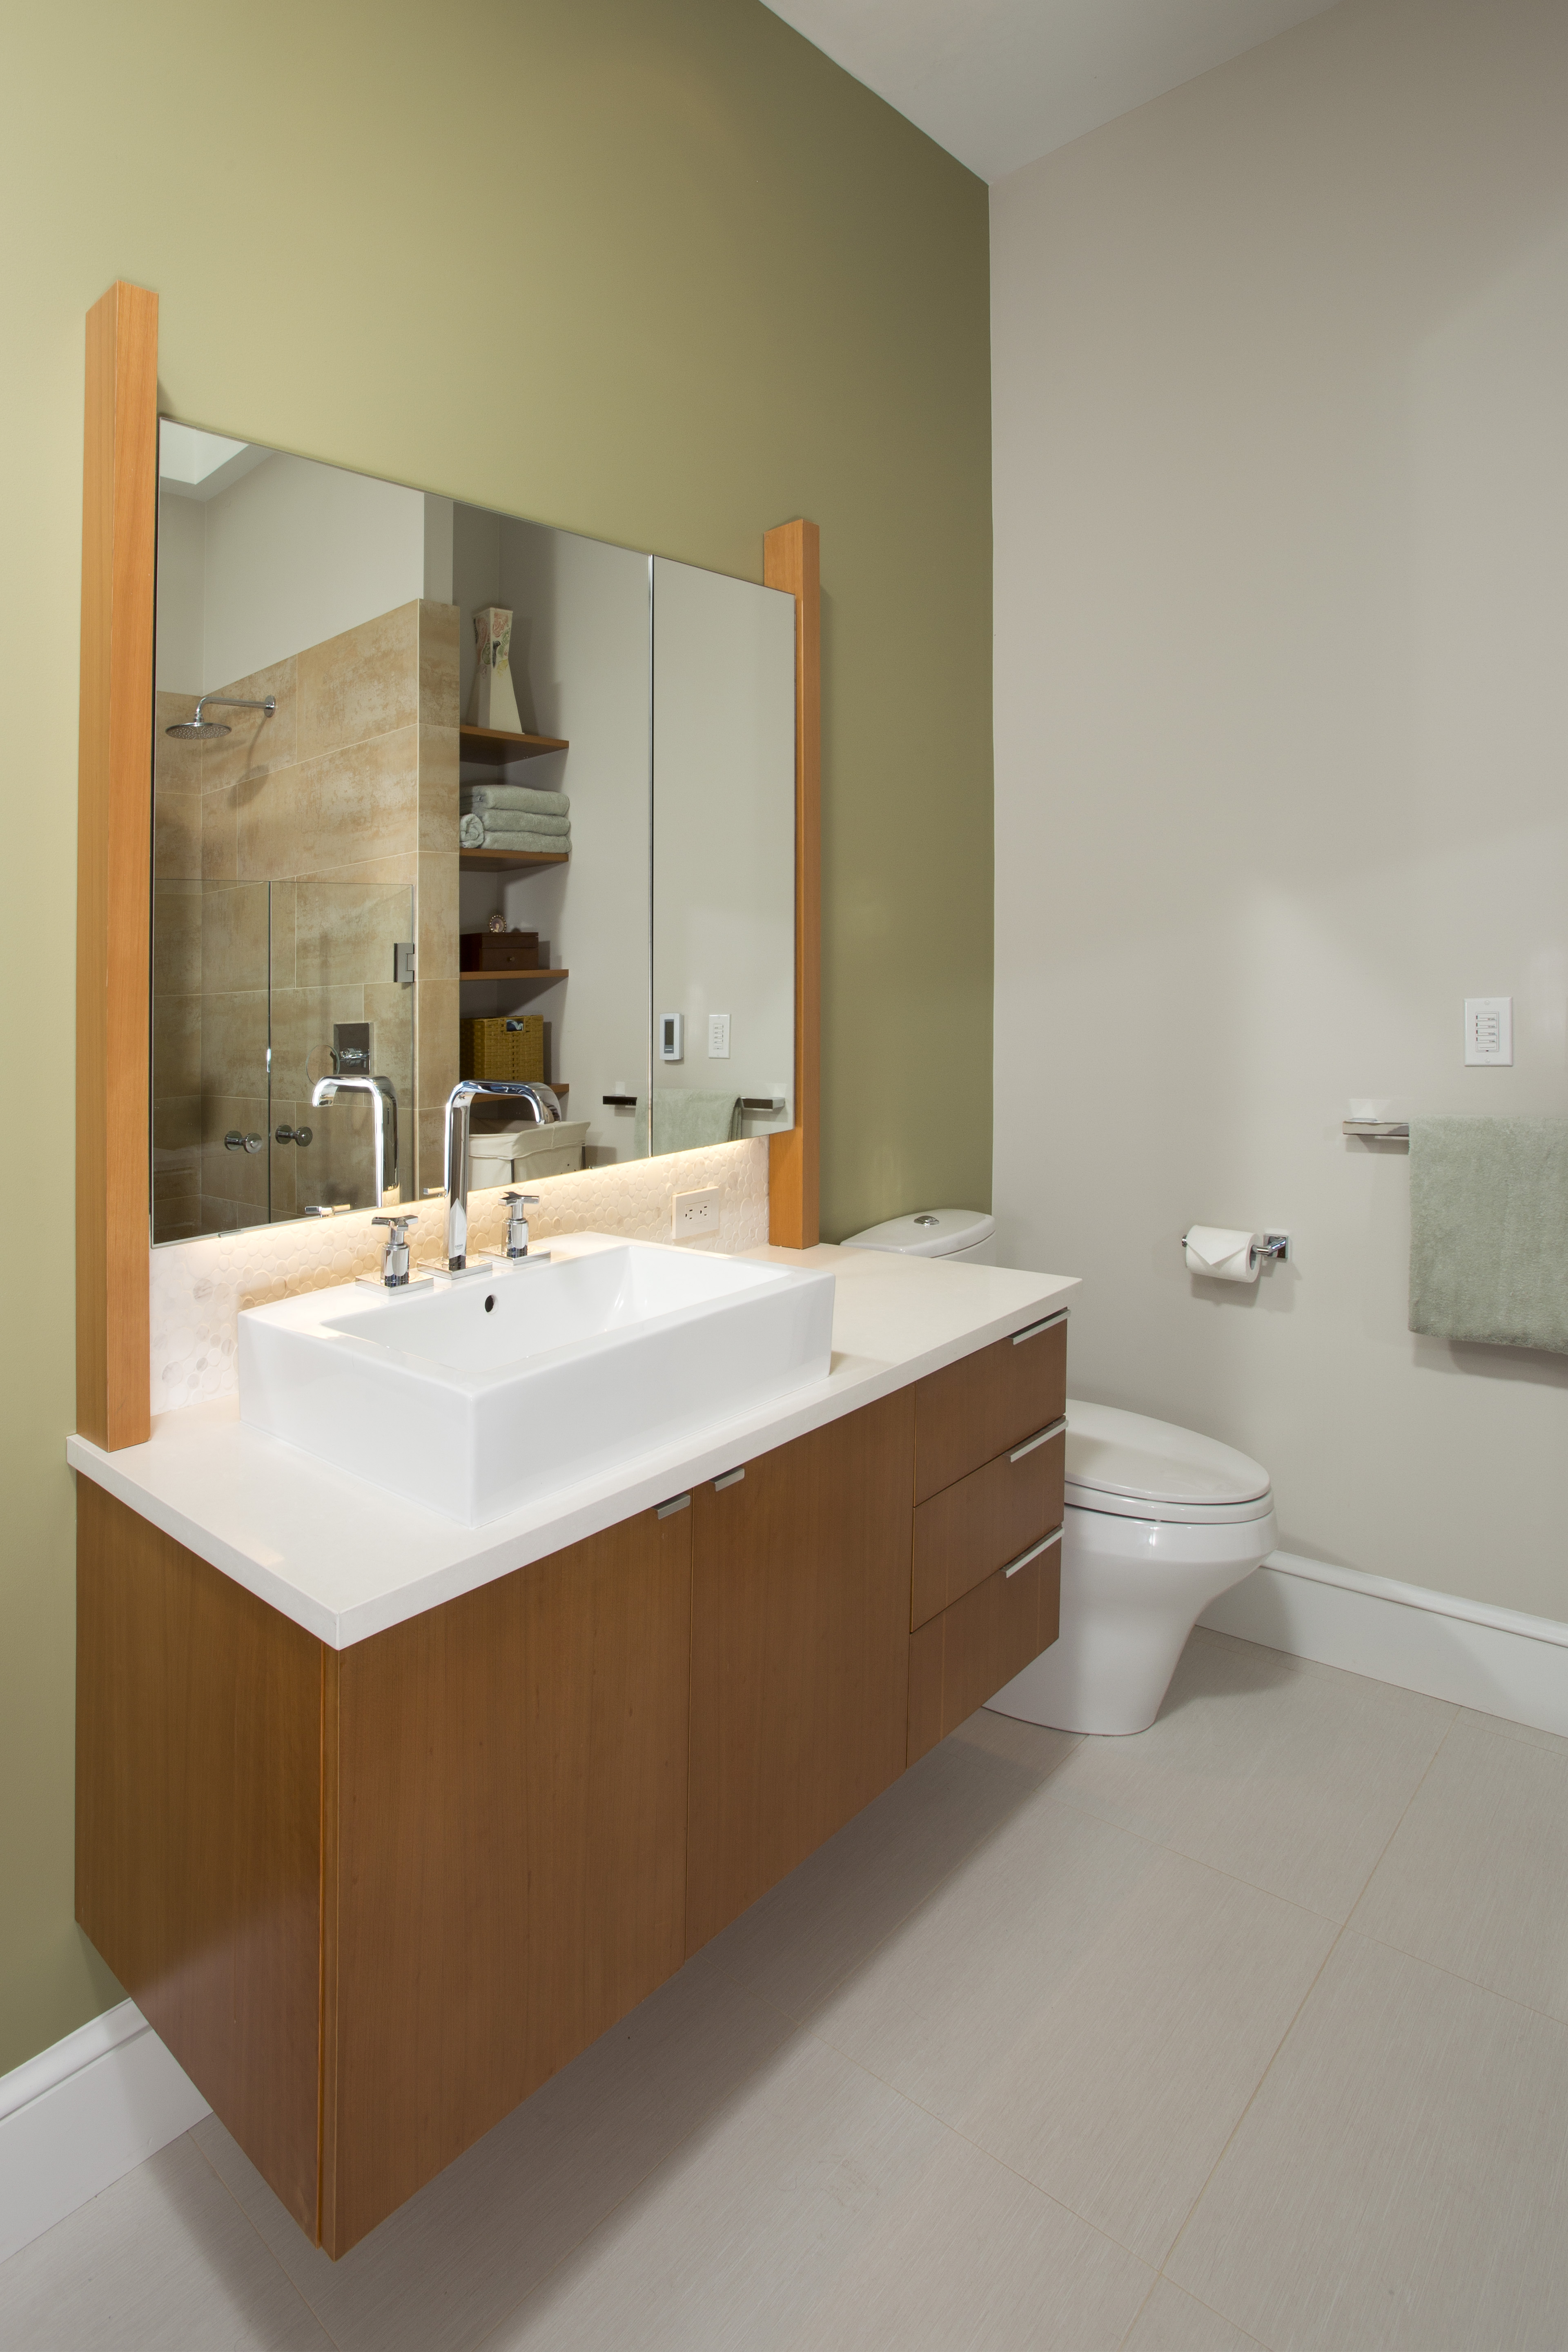 The other bathroom has a natural wood vanity with minimalist drawer pulls. A large white vessel sink melds into the countertops.